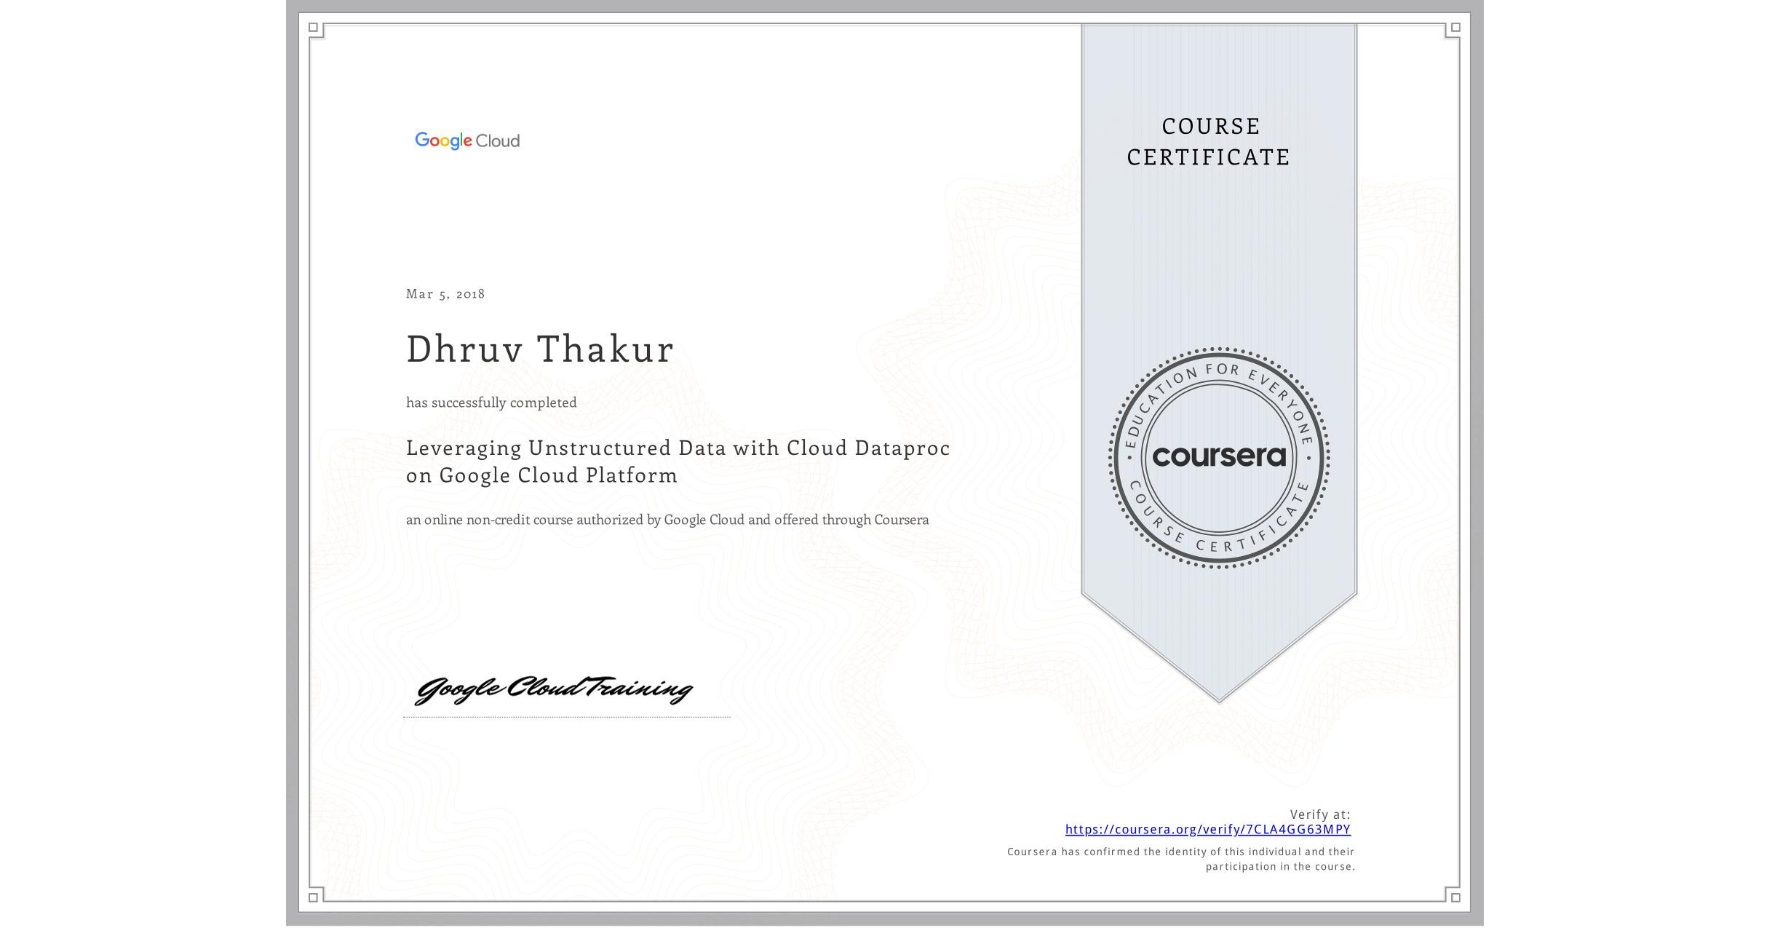 View certificate for Dhruv Thakur, Leveraging Unstructured Data with Cloud Dataproc on Google Cloud Platform, an online non-credit course authorized by Google Cloud and offered through Coursera